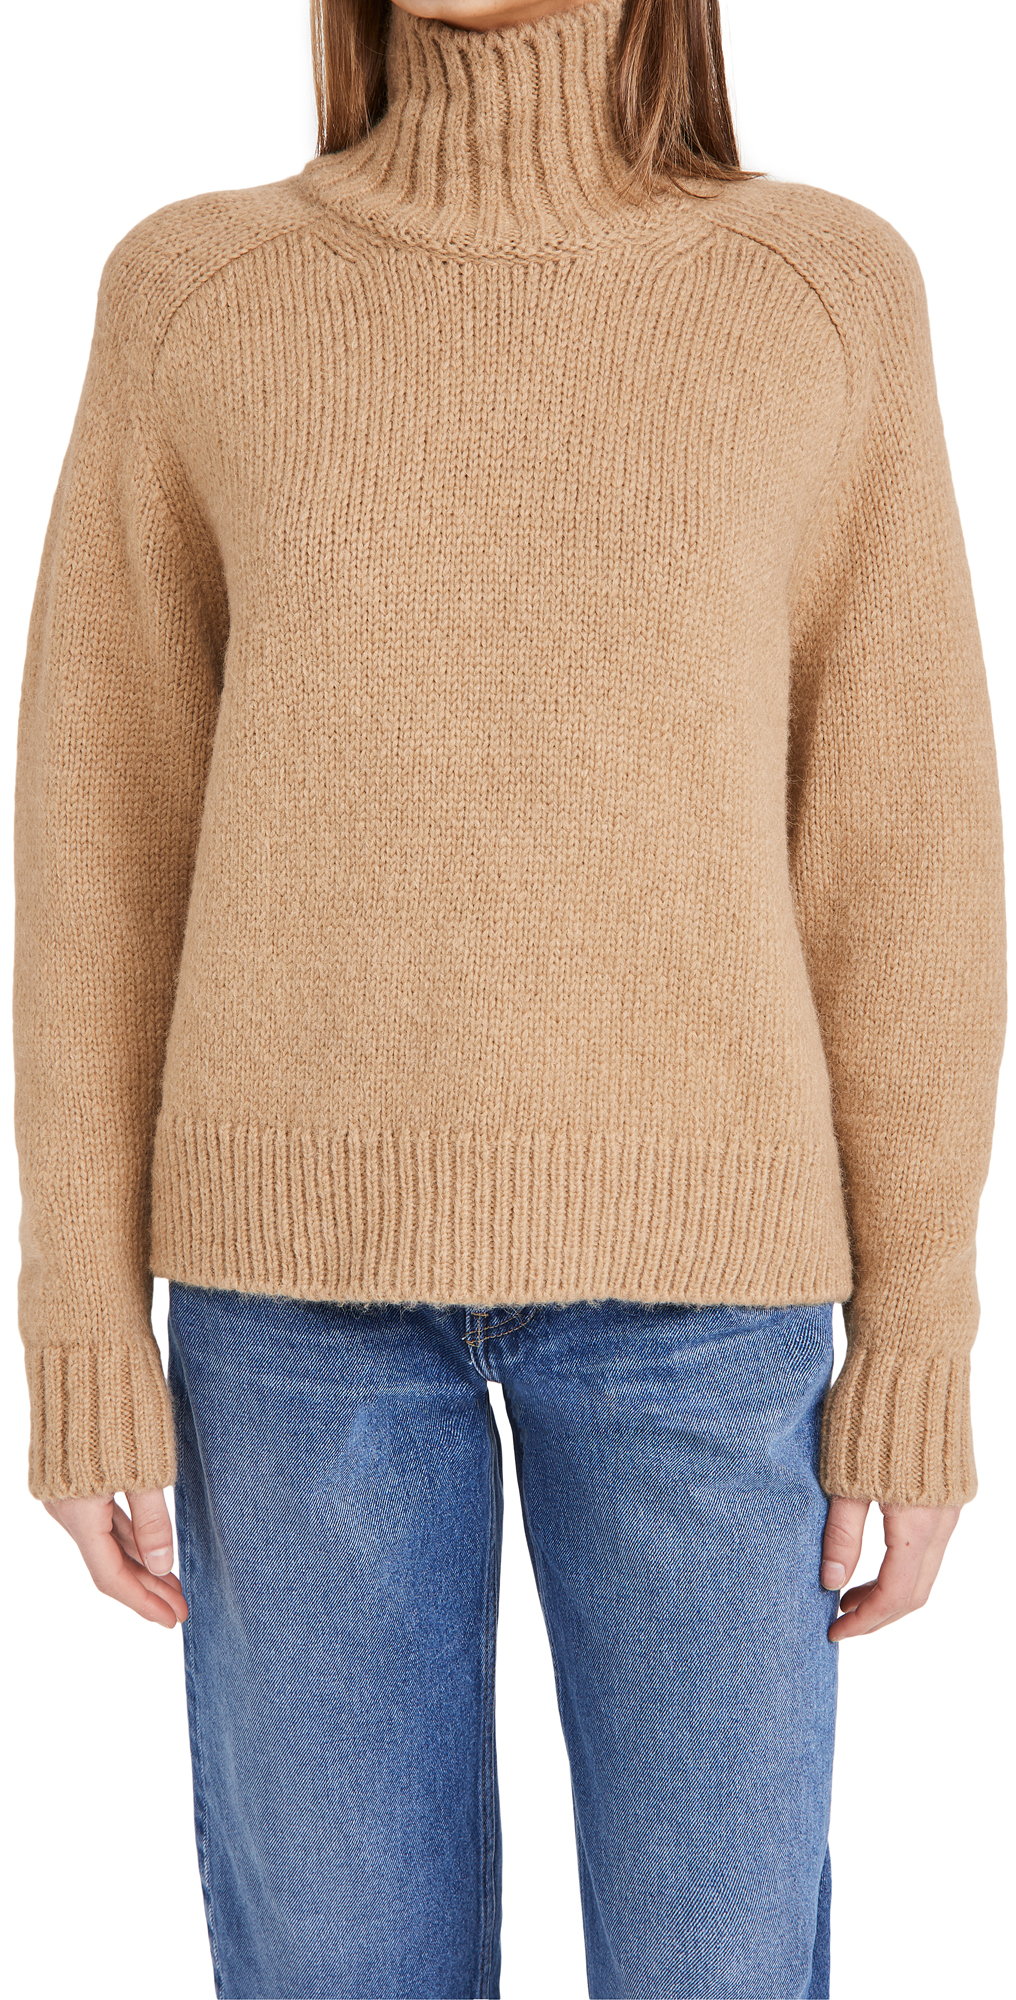 Closed Womens Knit Sweater